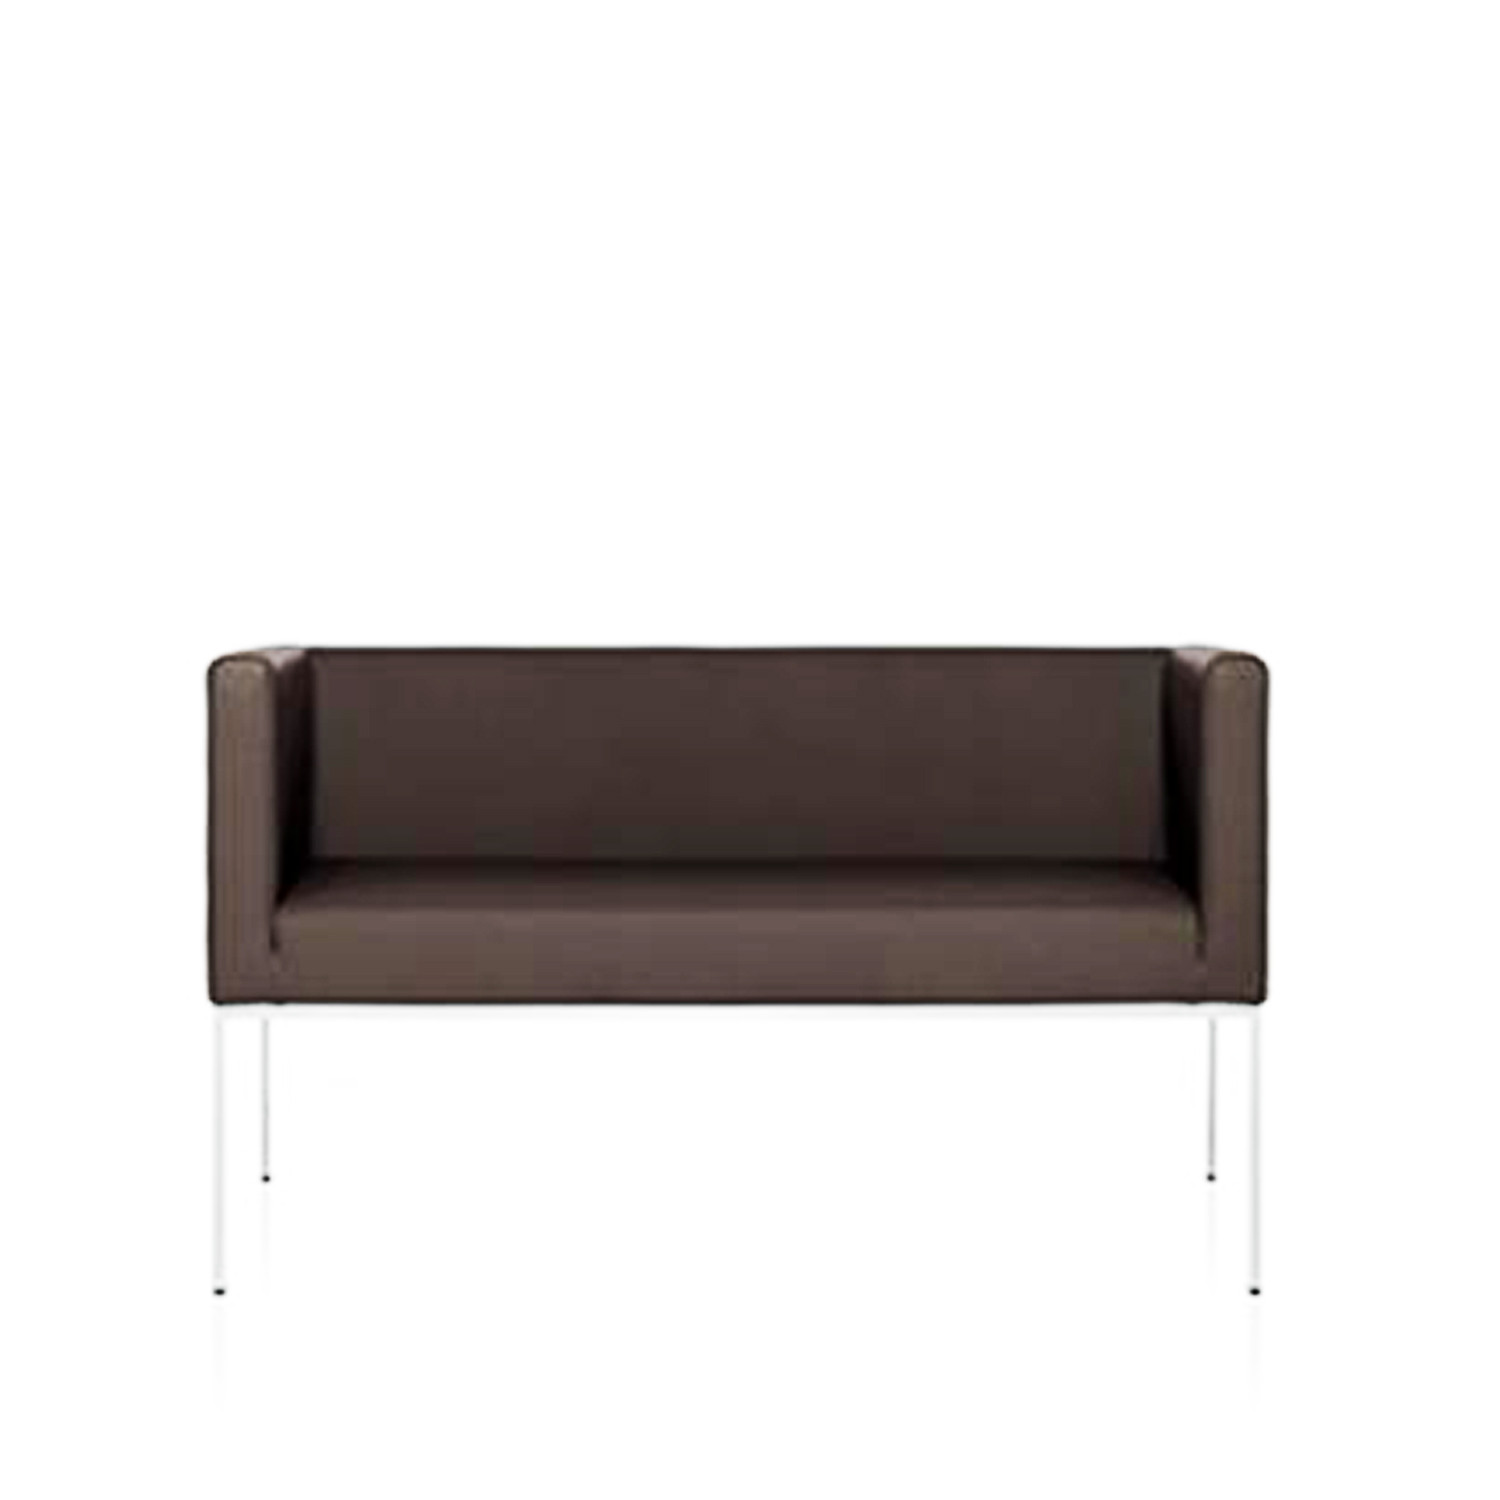 Square Two Seater Sofa